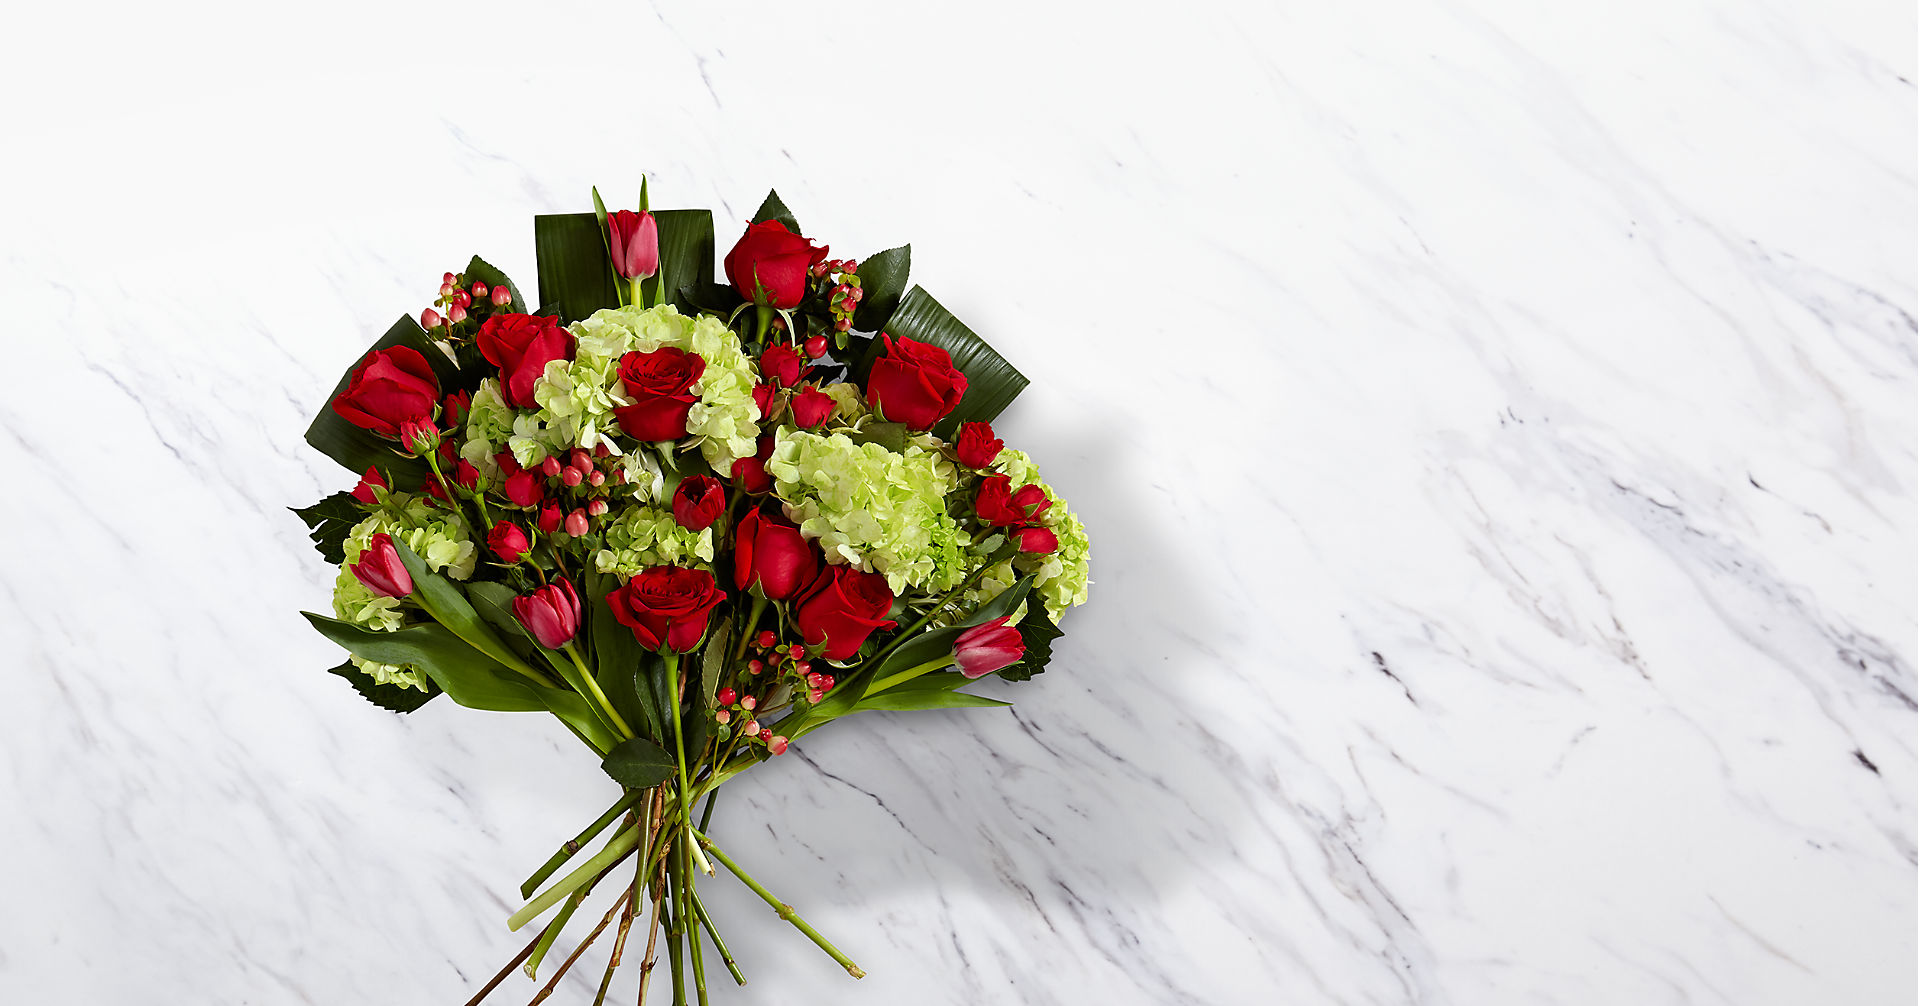 Festive Finesse Holiday Luxury Bouquet - VASE INCLUDED - Image 1 Of 3